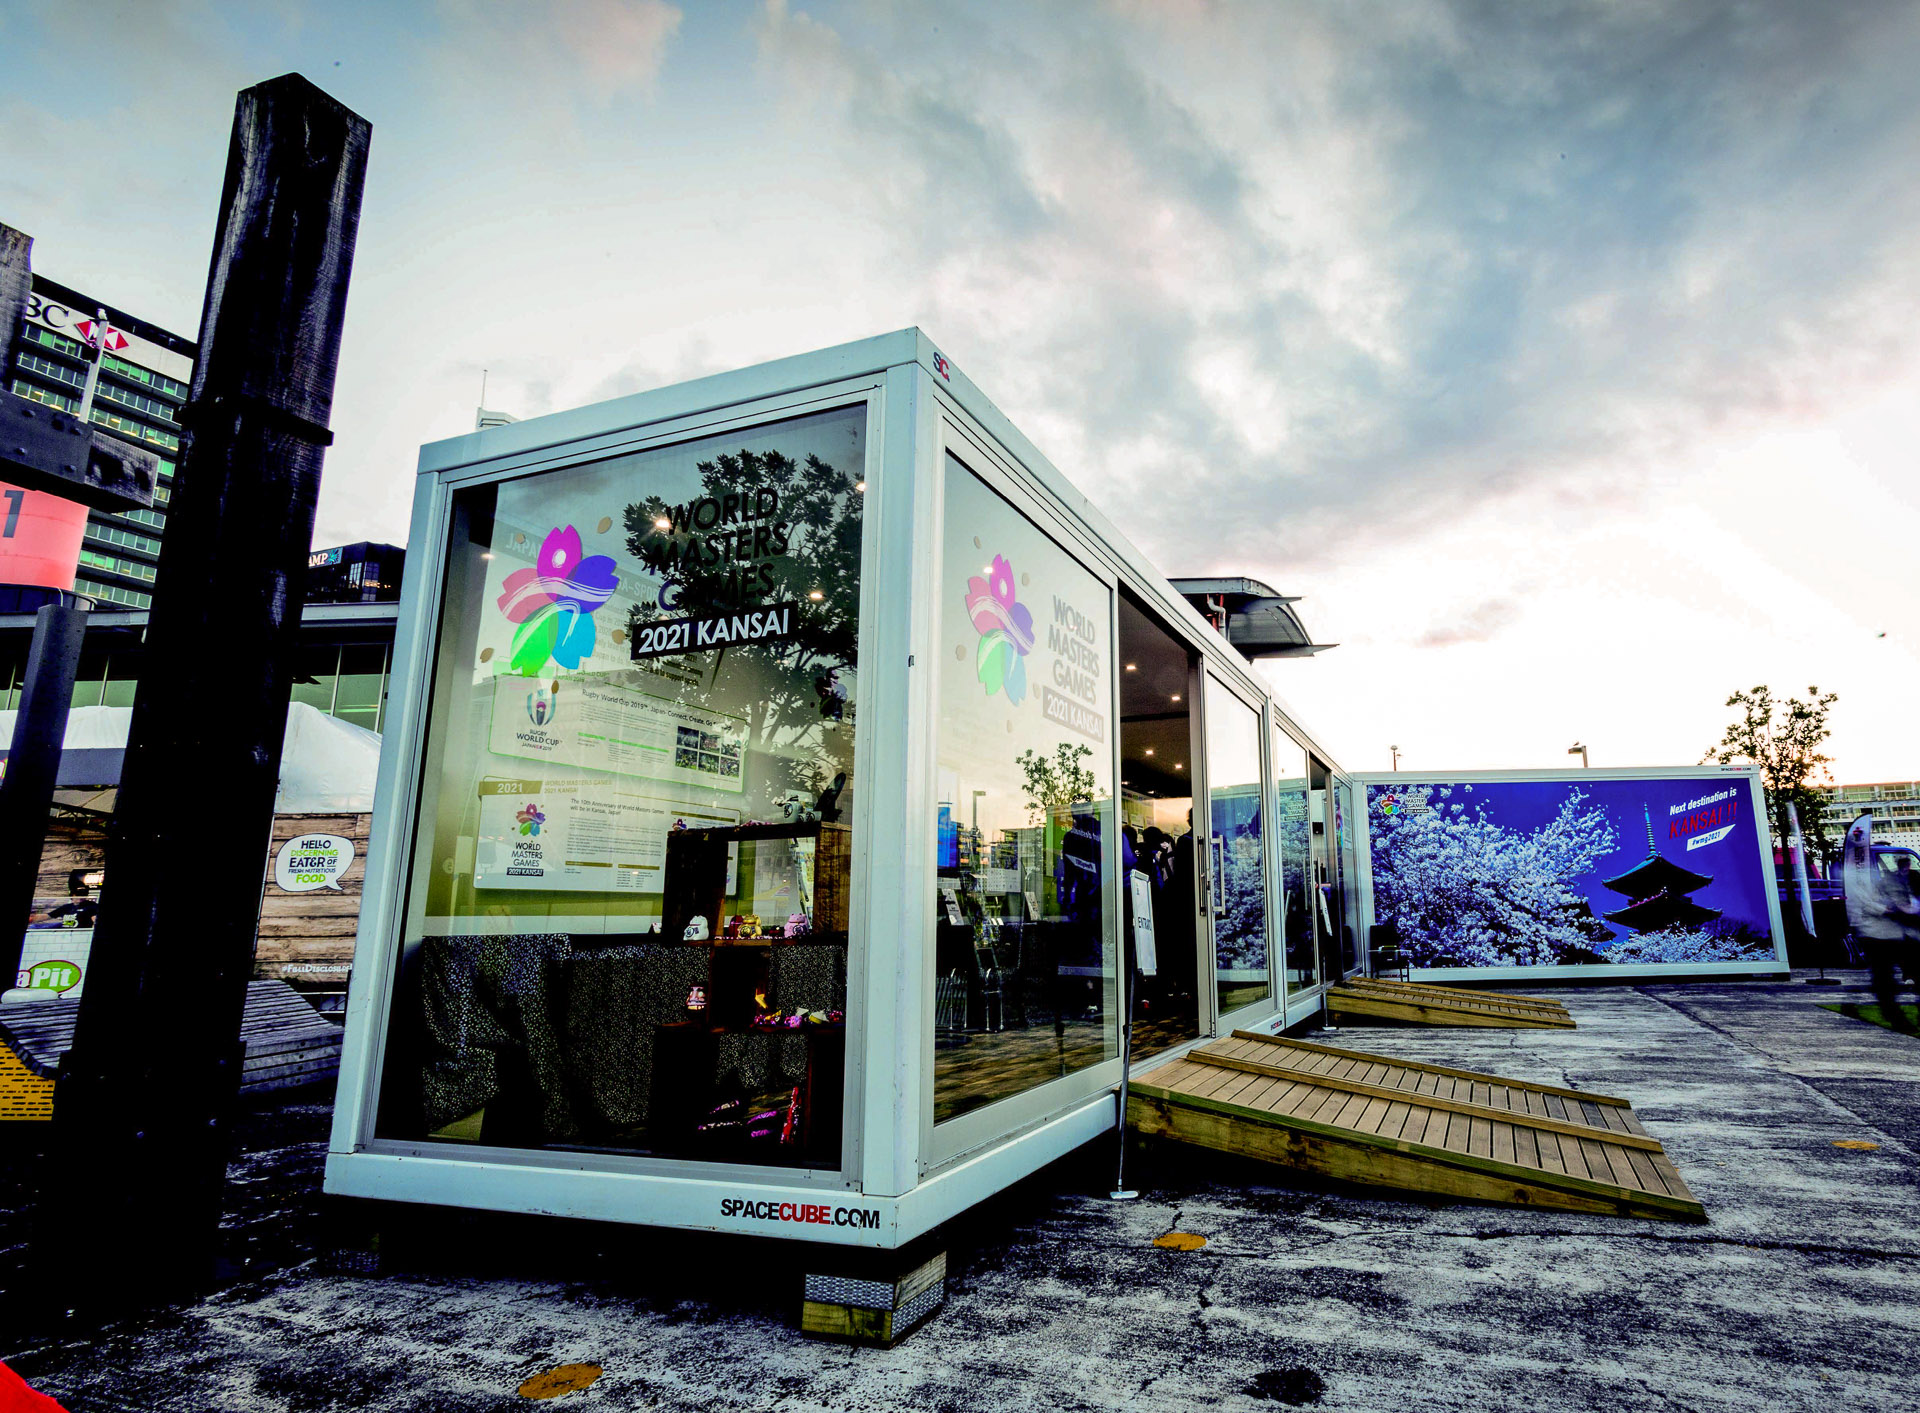 digital prints applied to the Event base space cubes